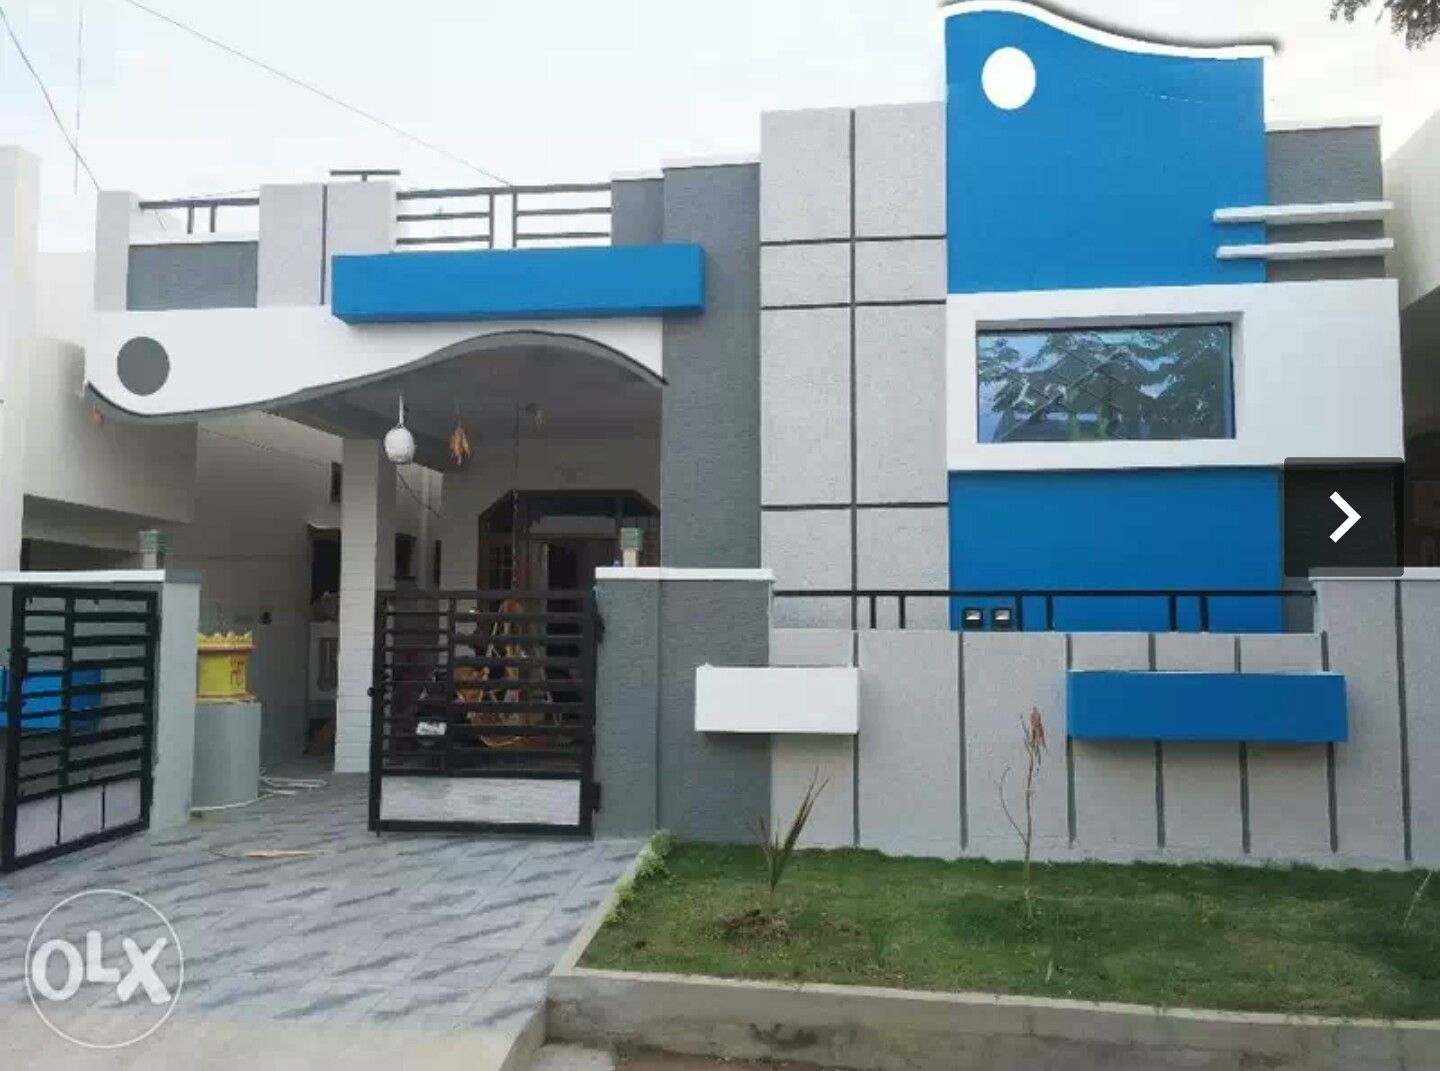 Asaram building elevation house elevation house front design modern house design front